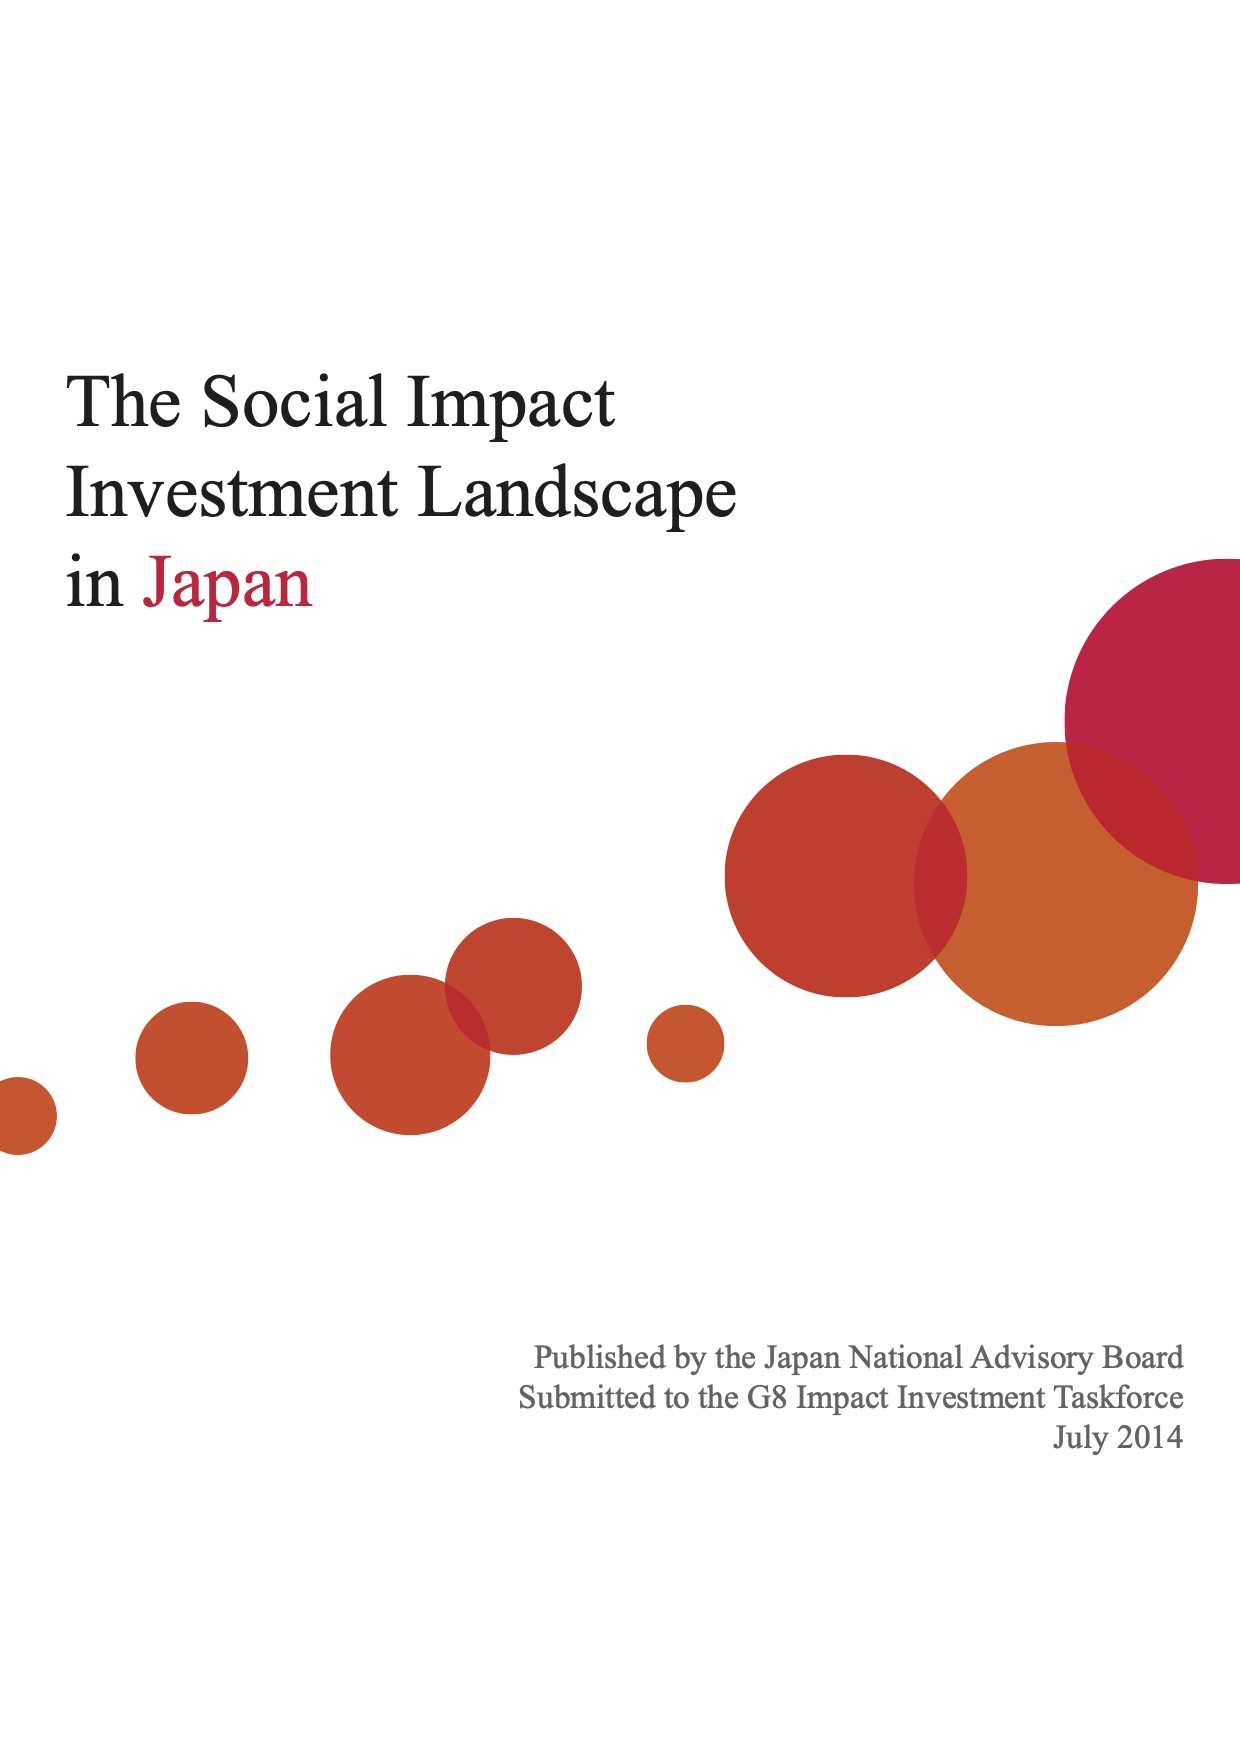 The Social Impact Investment Landscape in Japan 2014